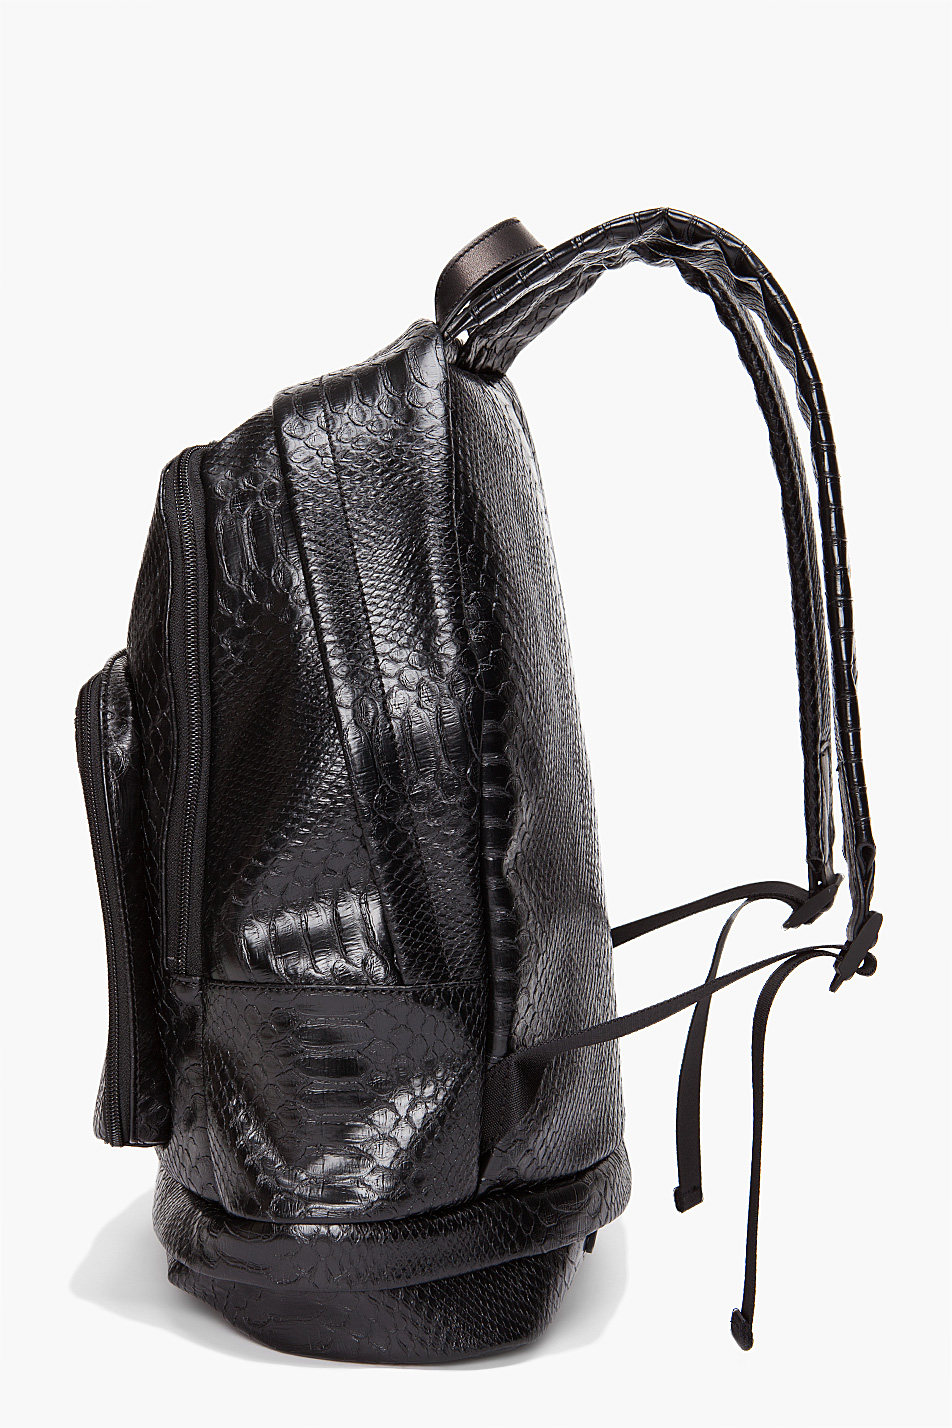 freshkings: Marc by Marc Jacobs Nifty Gifty Python Backpack:SHOP